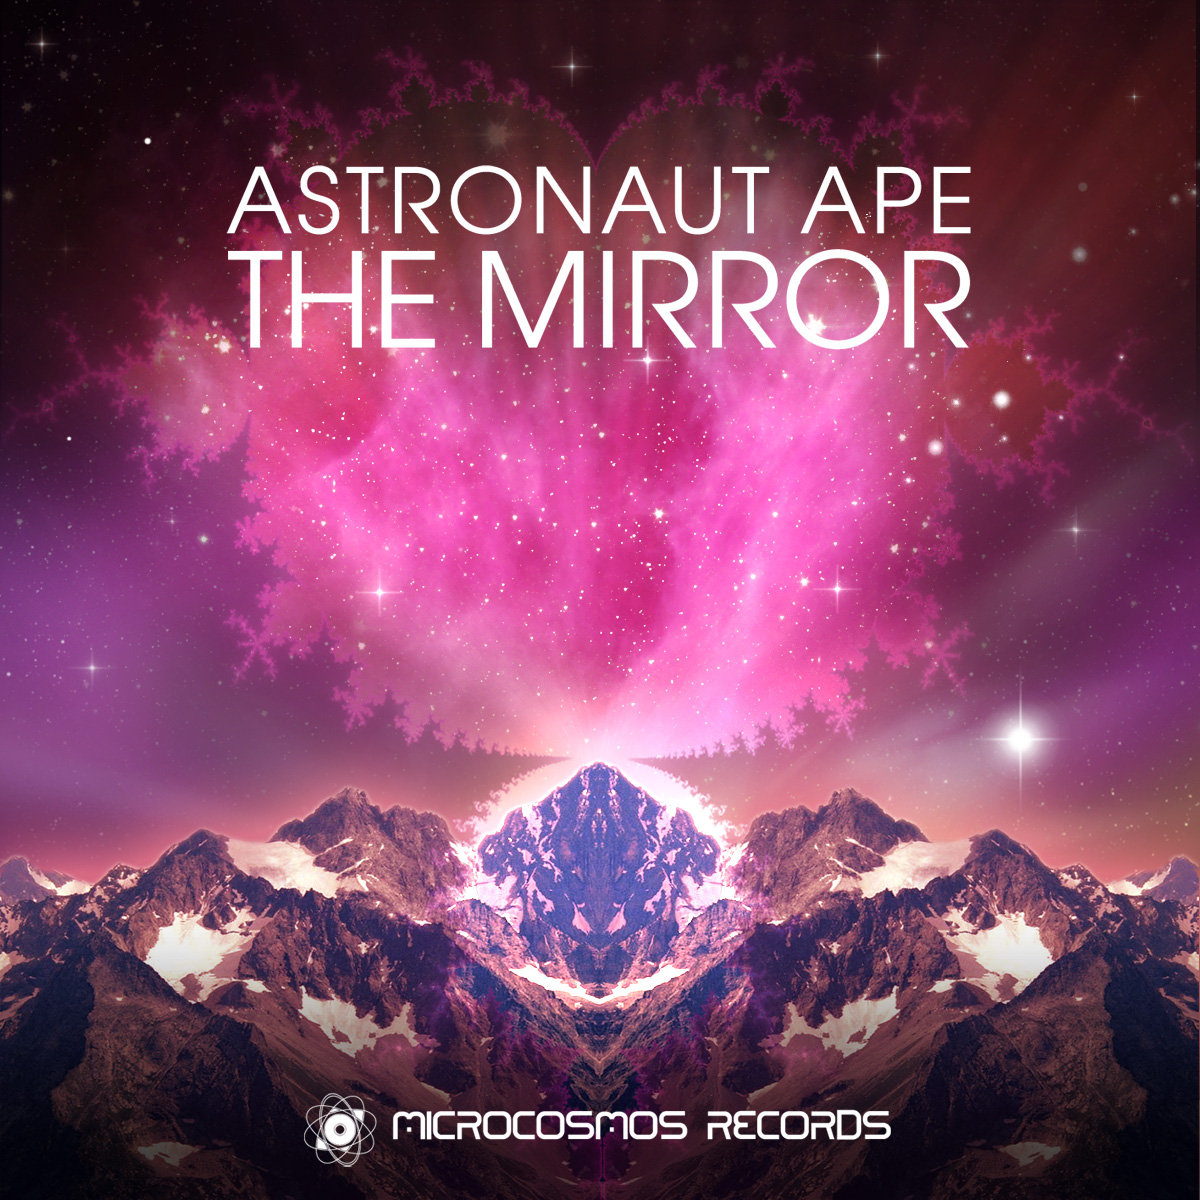 Astronaut Ape - Stars Around Me @ 'The Mirror' album (ambient, chill-out)